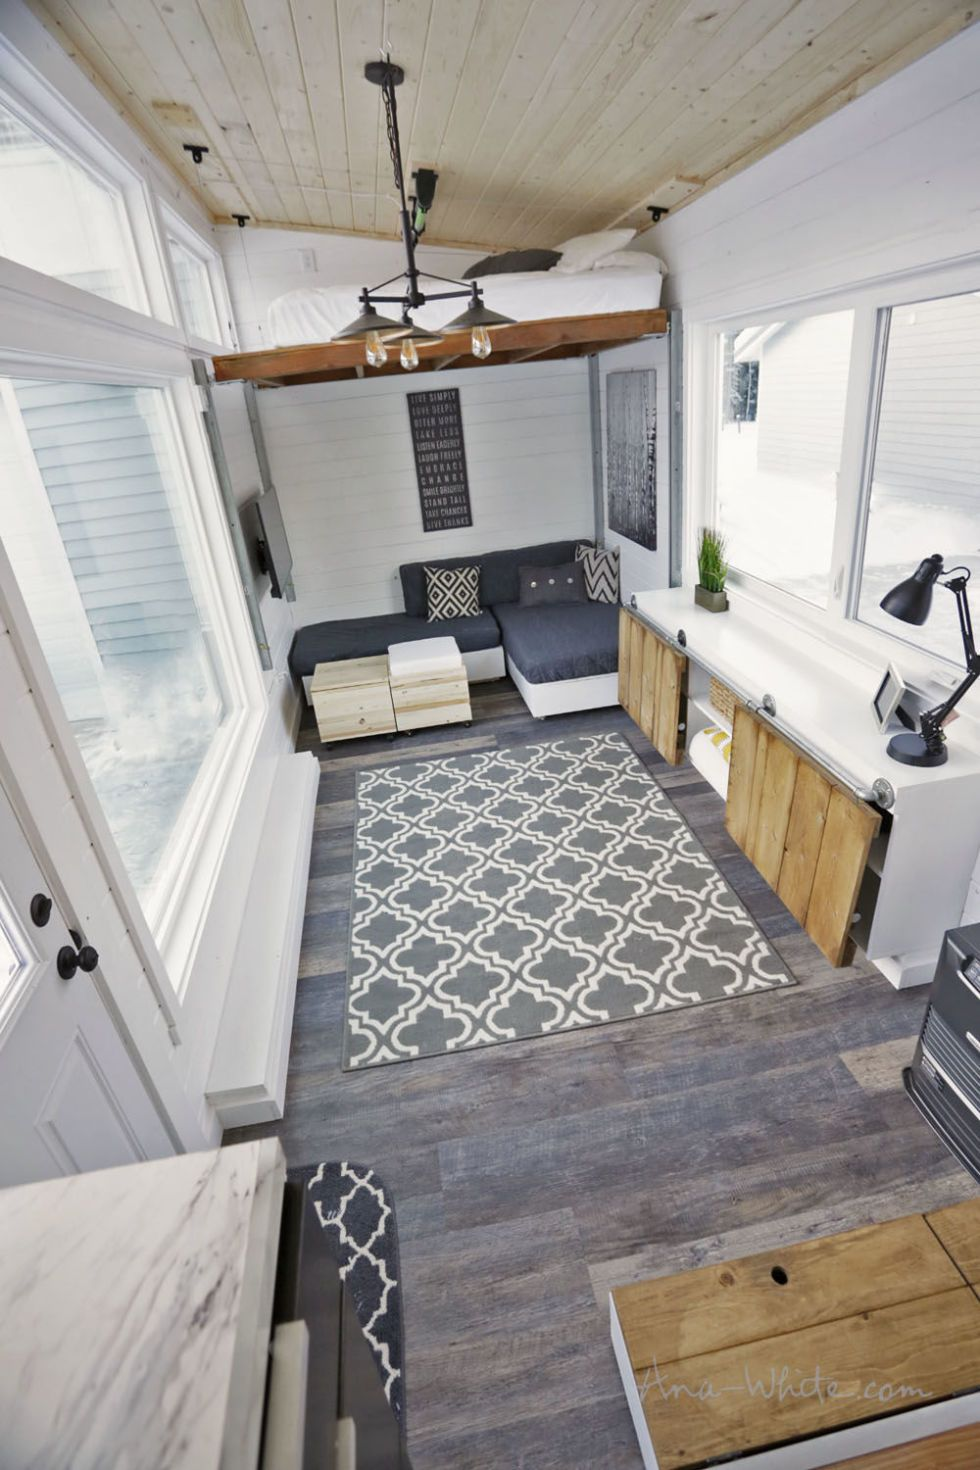 One Genius Idea Freed Up Tons Of Space In This Tiny Home Modern Tiny House Tiny House Plans Tiny House Design